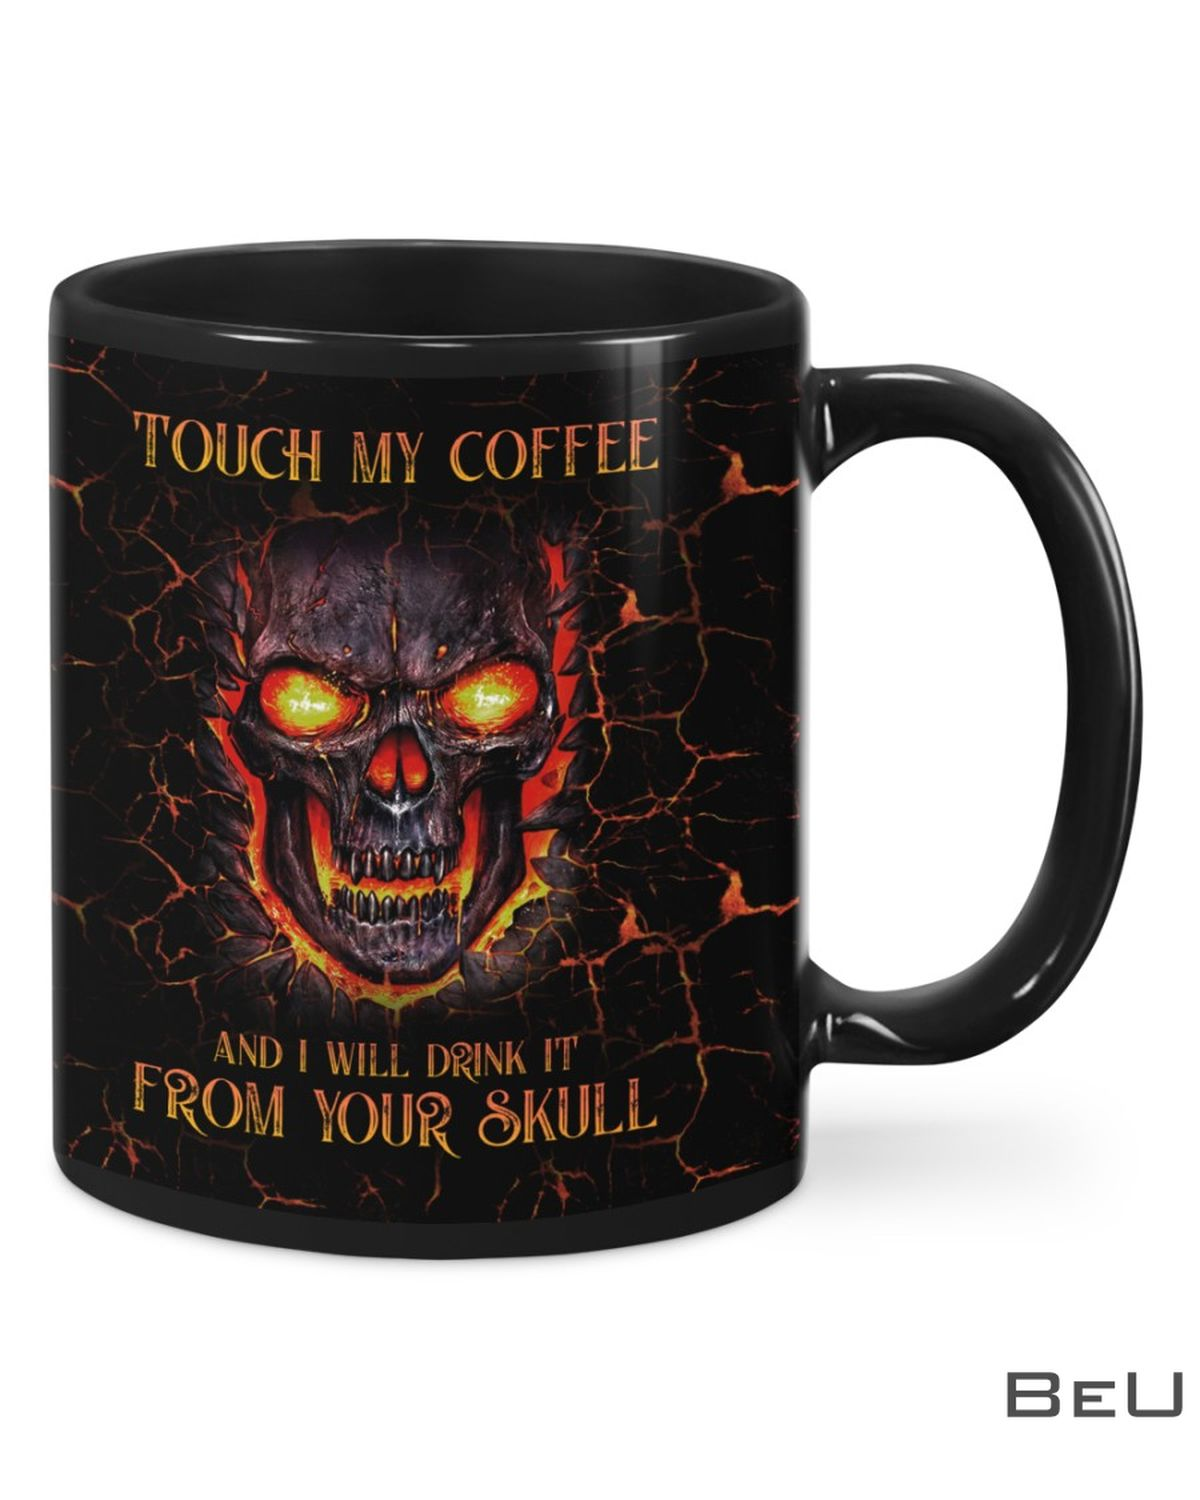 Touch My Coffee And I Will Drink It From Your Skull Lava Mug